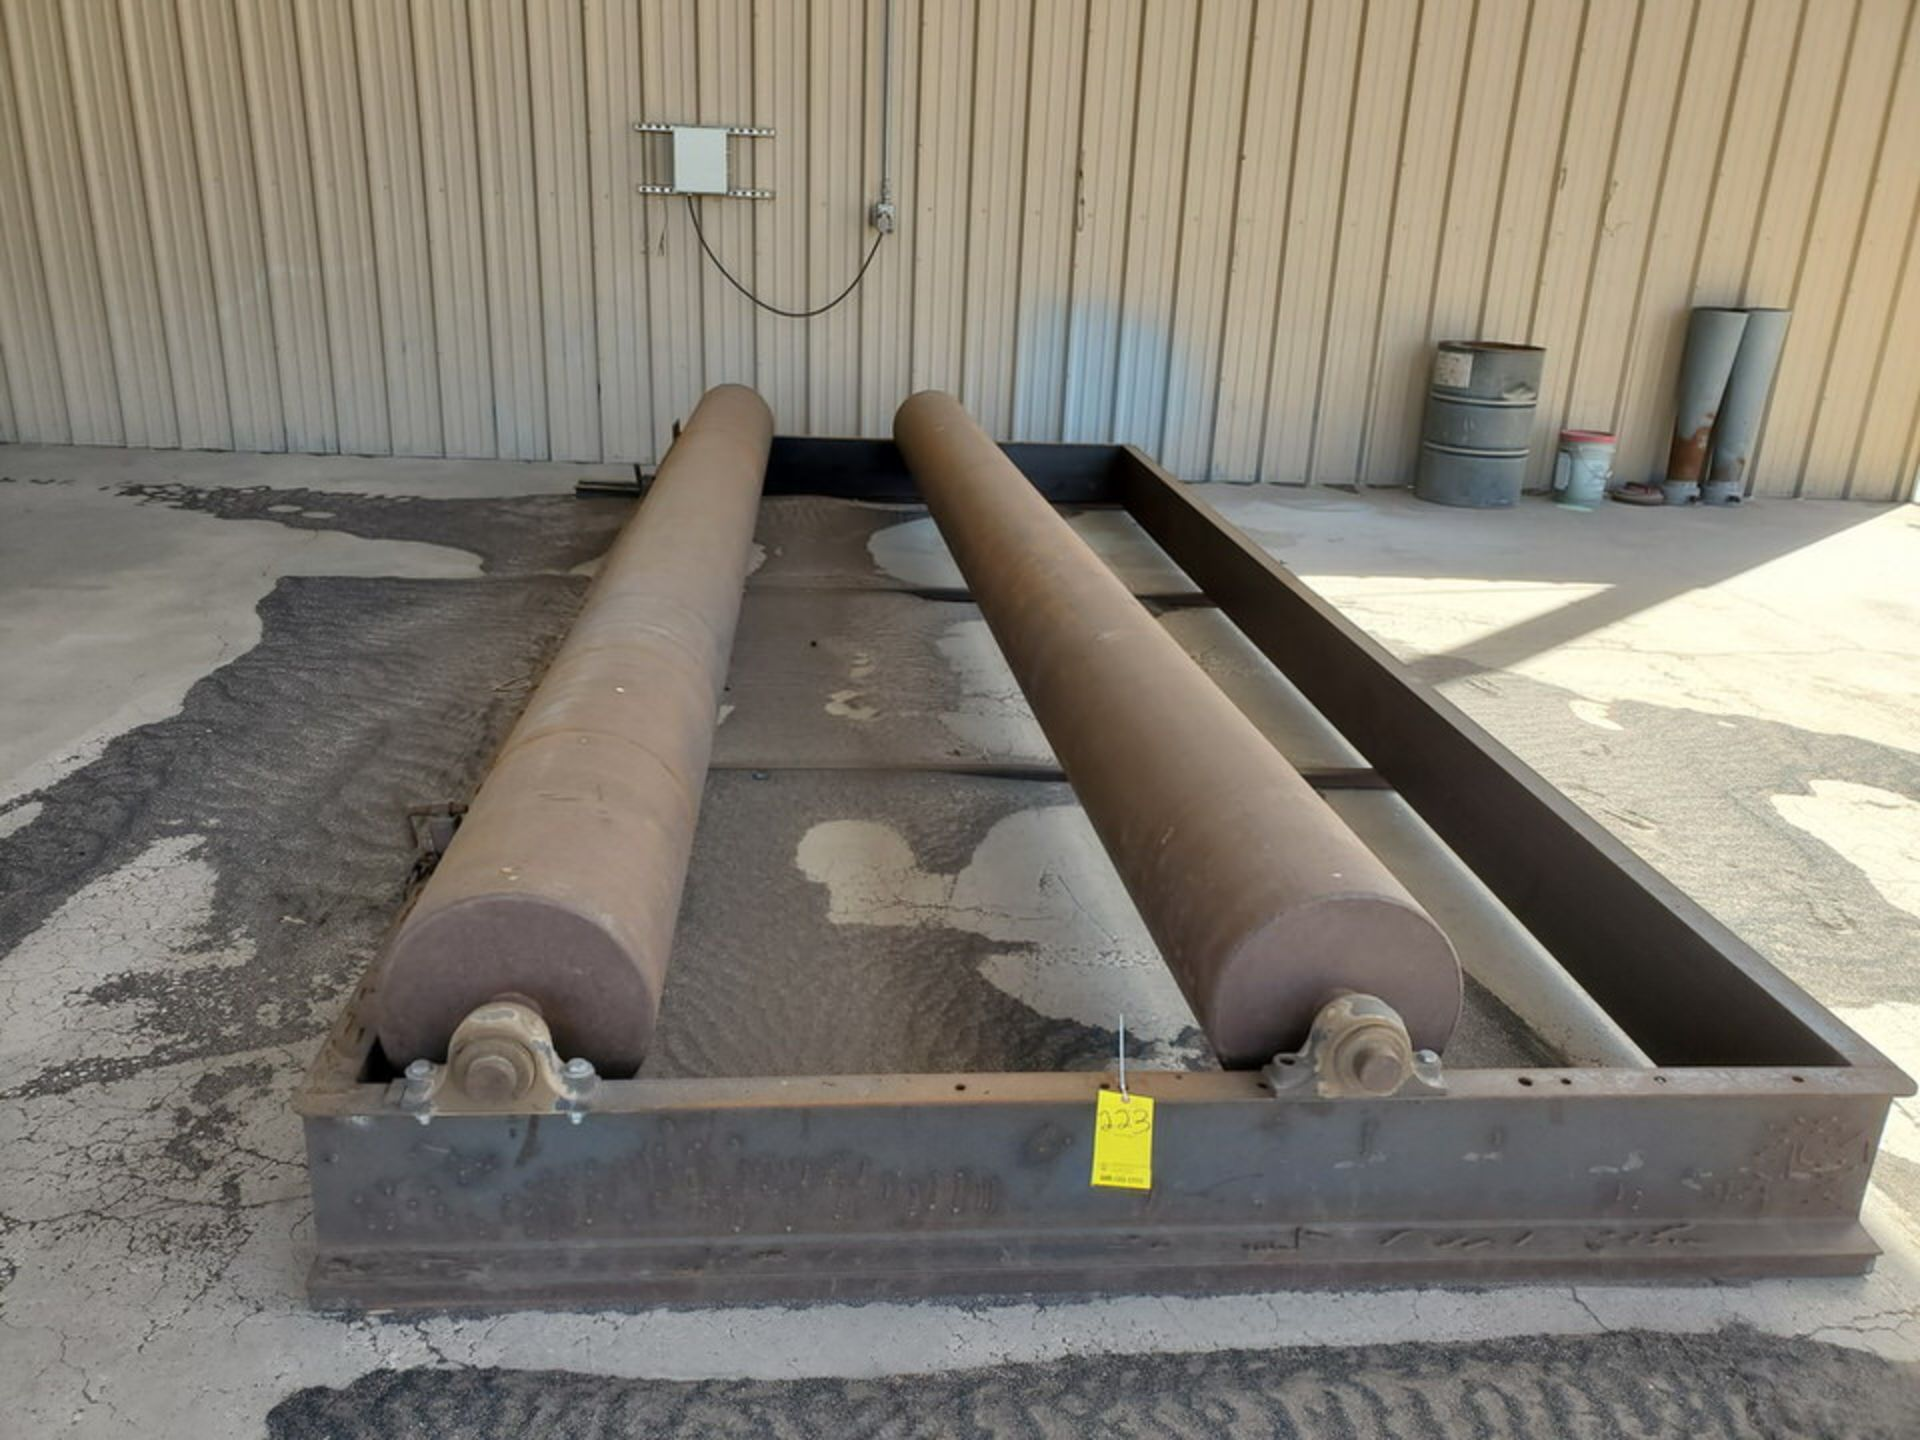 """Turn Roll 8' x 20'6"""", 16"""" O.D. Rolls, 1' Base; Overall Dims: 9'8""""W - Image 2 of 8"""